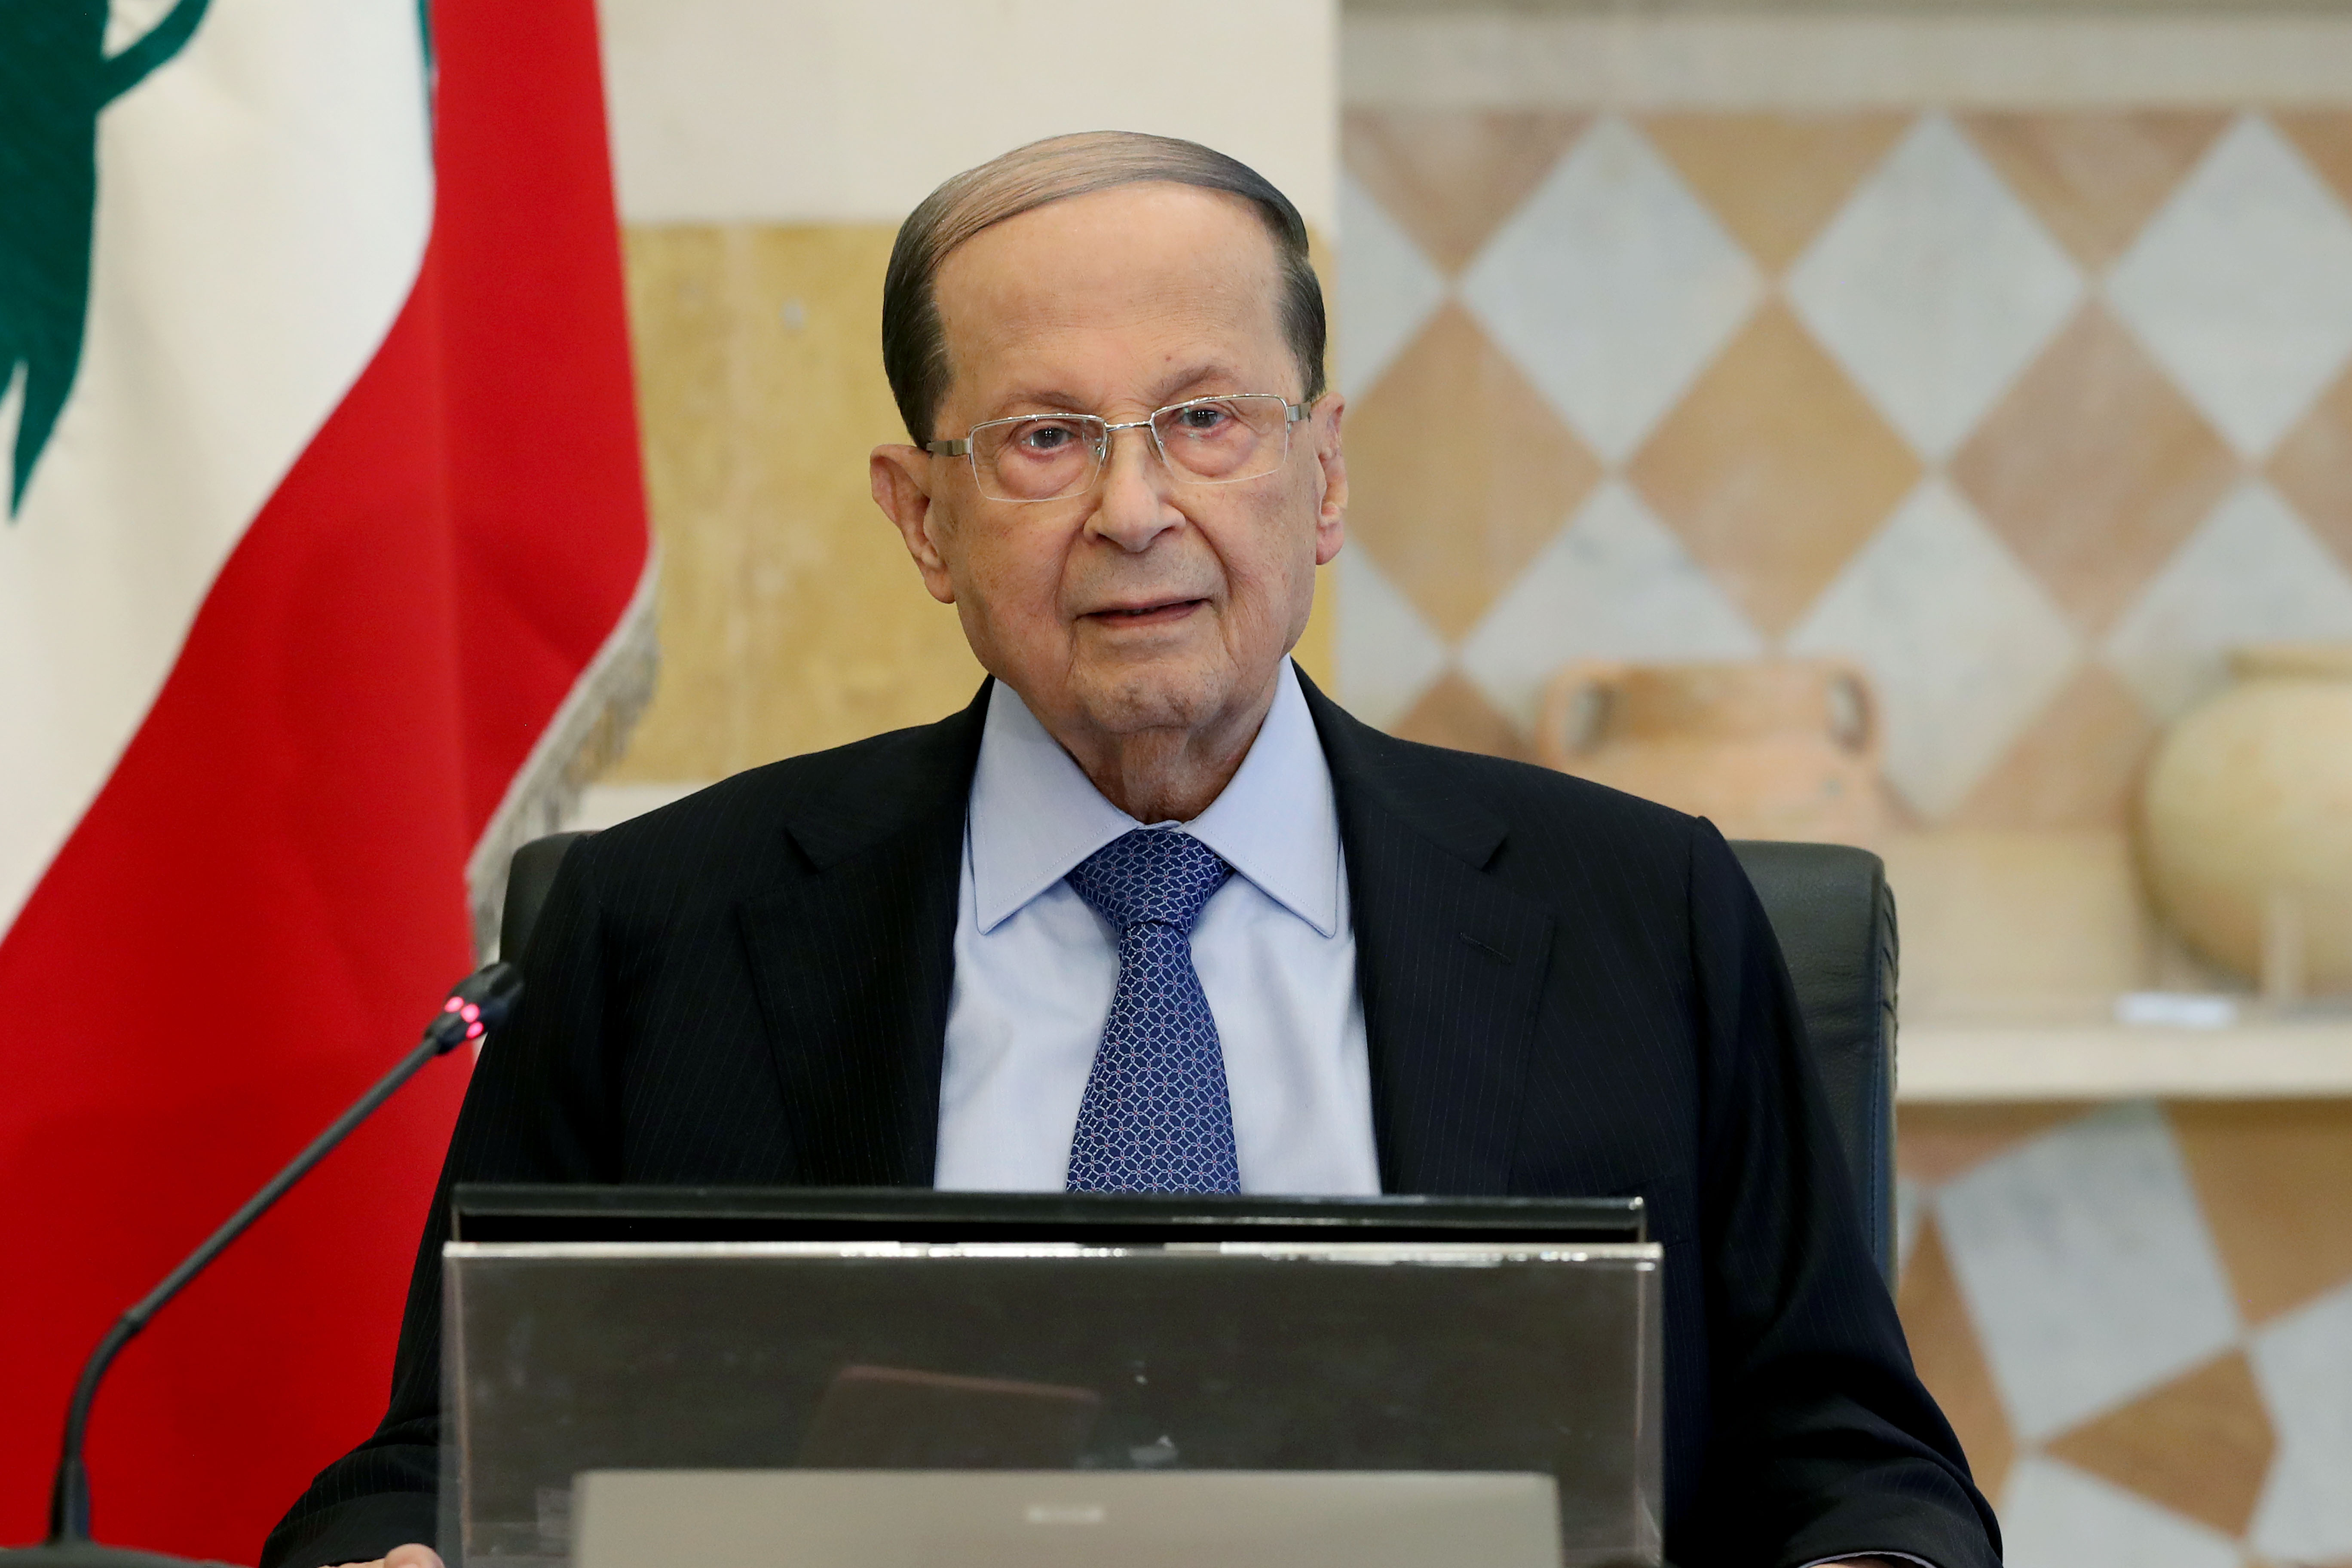 3 - President Michel Aoun Speech to the Lebanese. 1